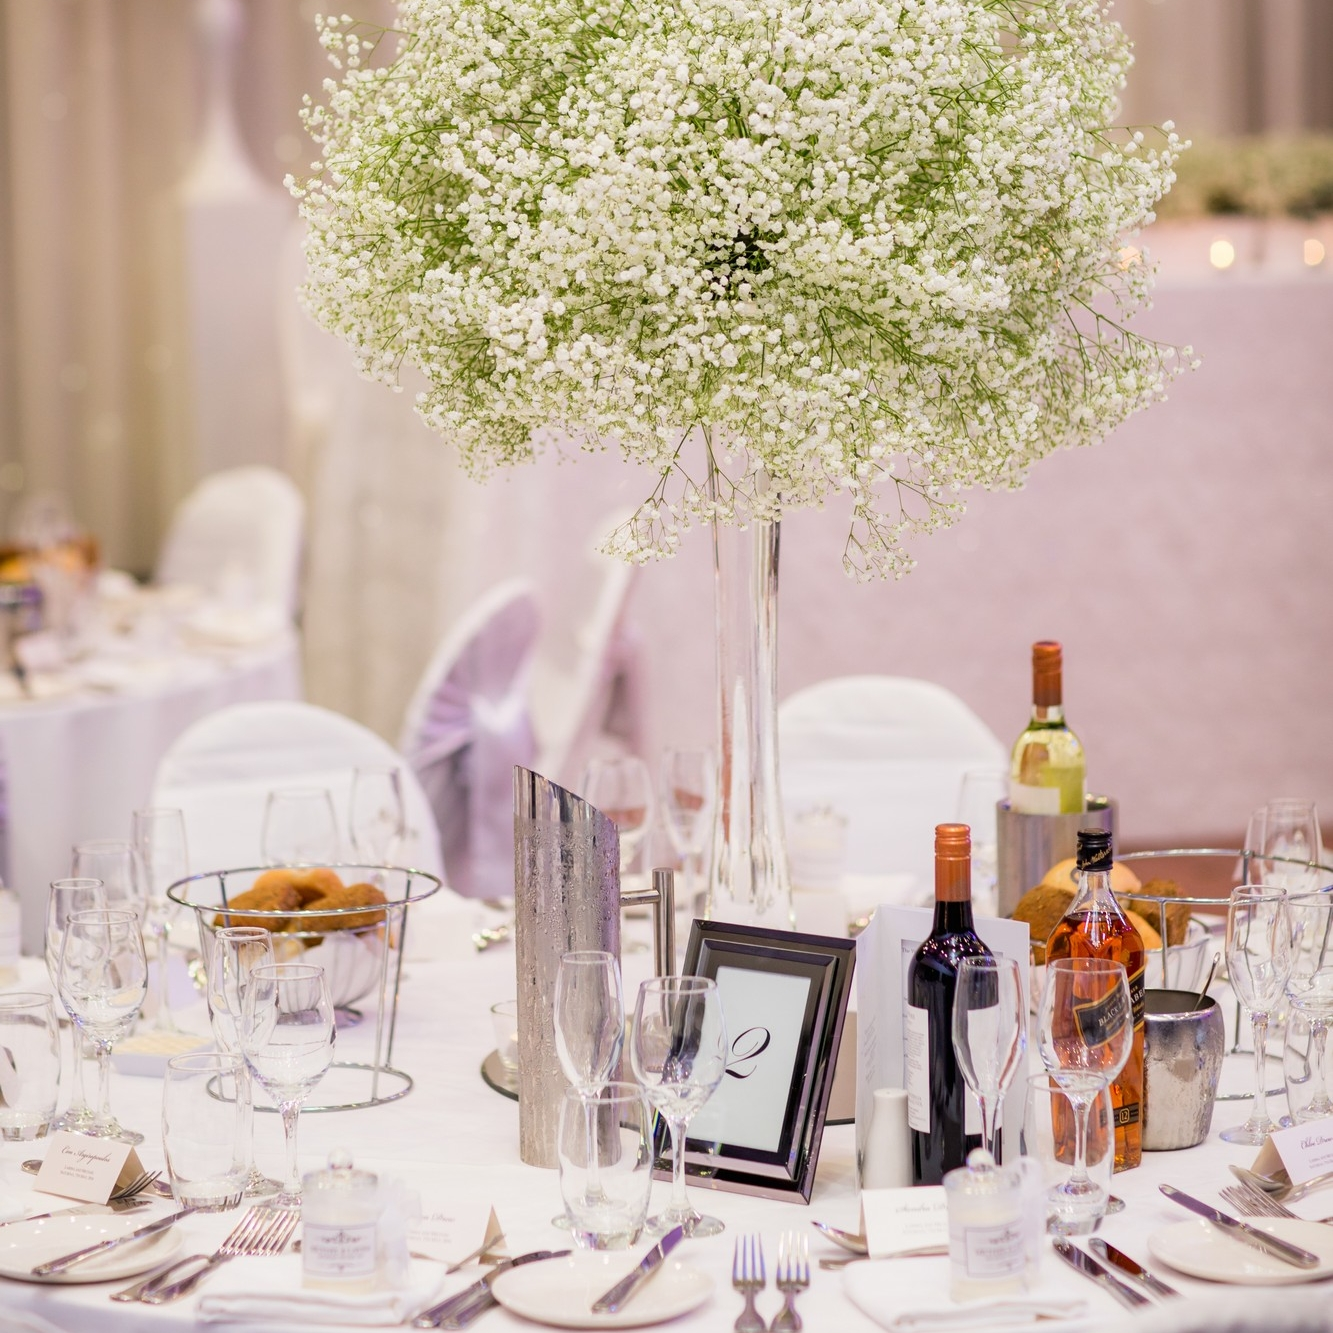 mirror_table_number_weddings_event_decoration_hire.jpg